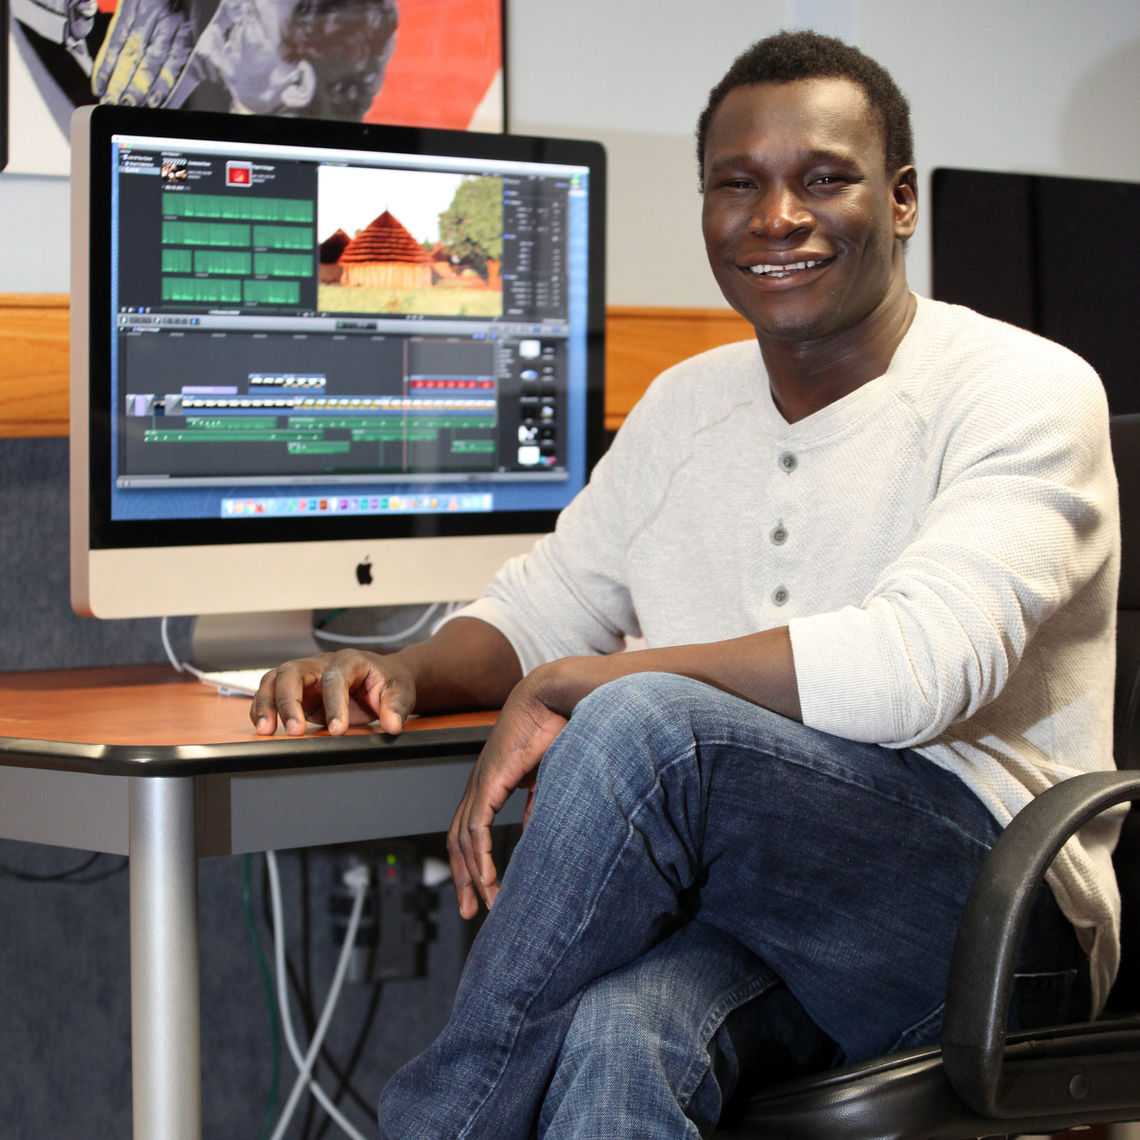 Dominic Akena is first looking to work in the film and media production field before going on to graduate school.